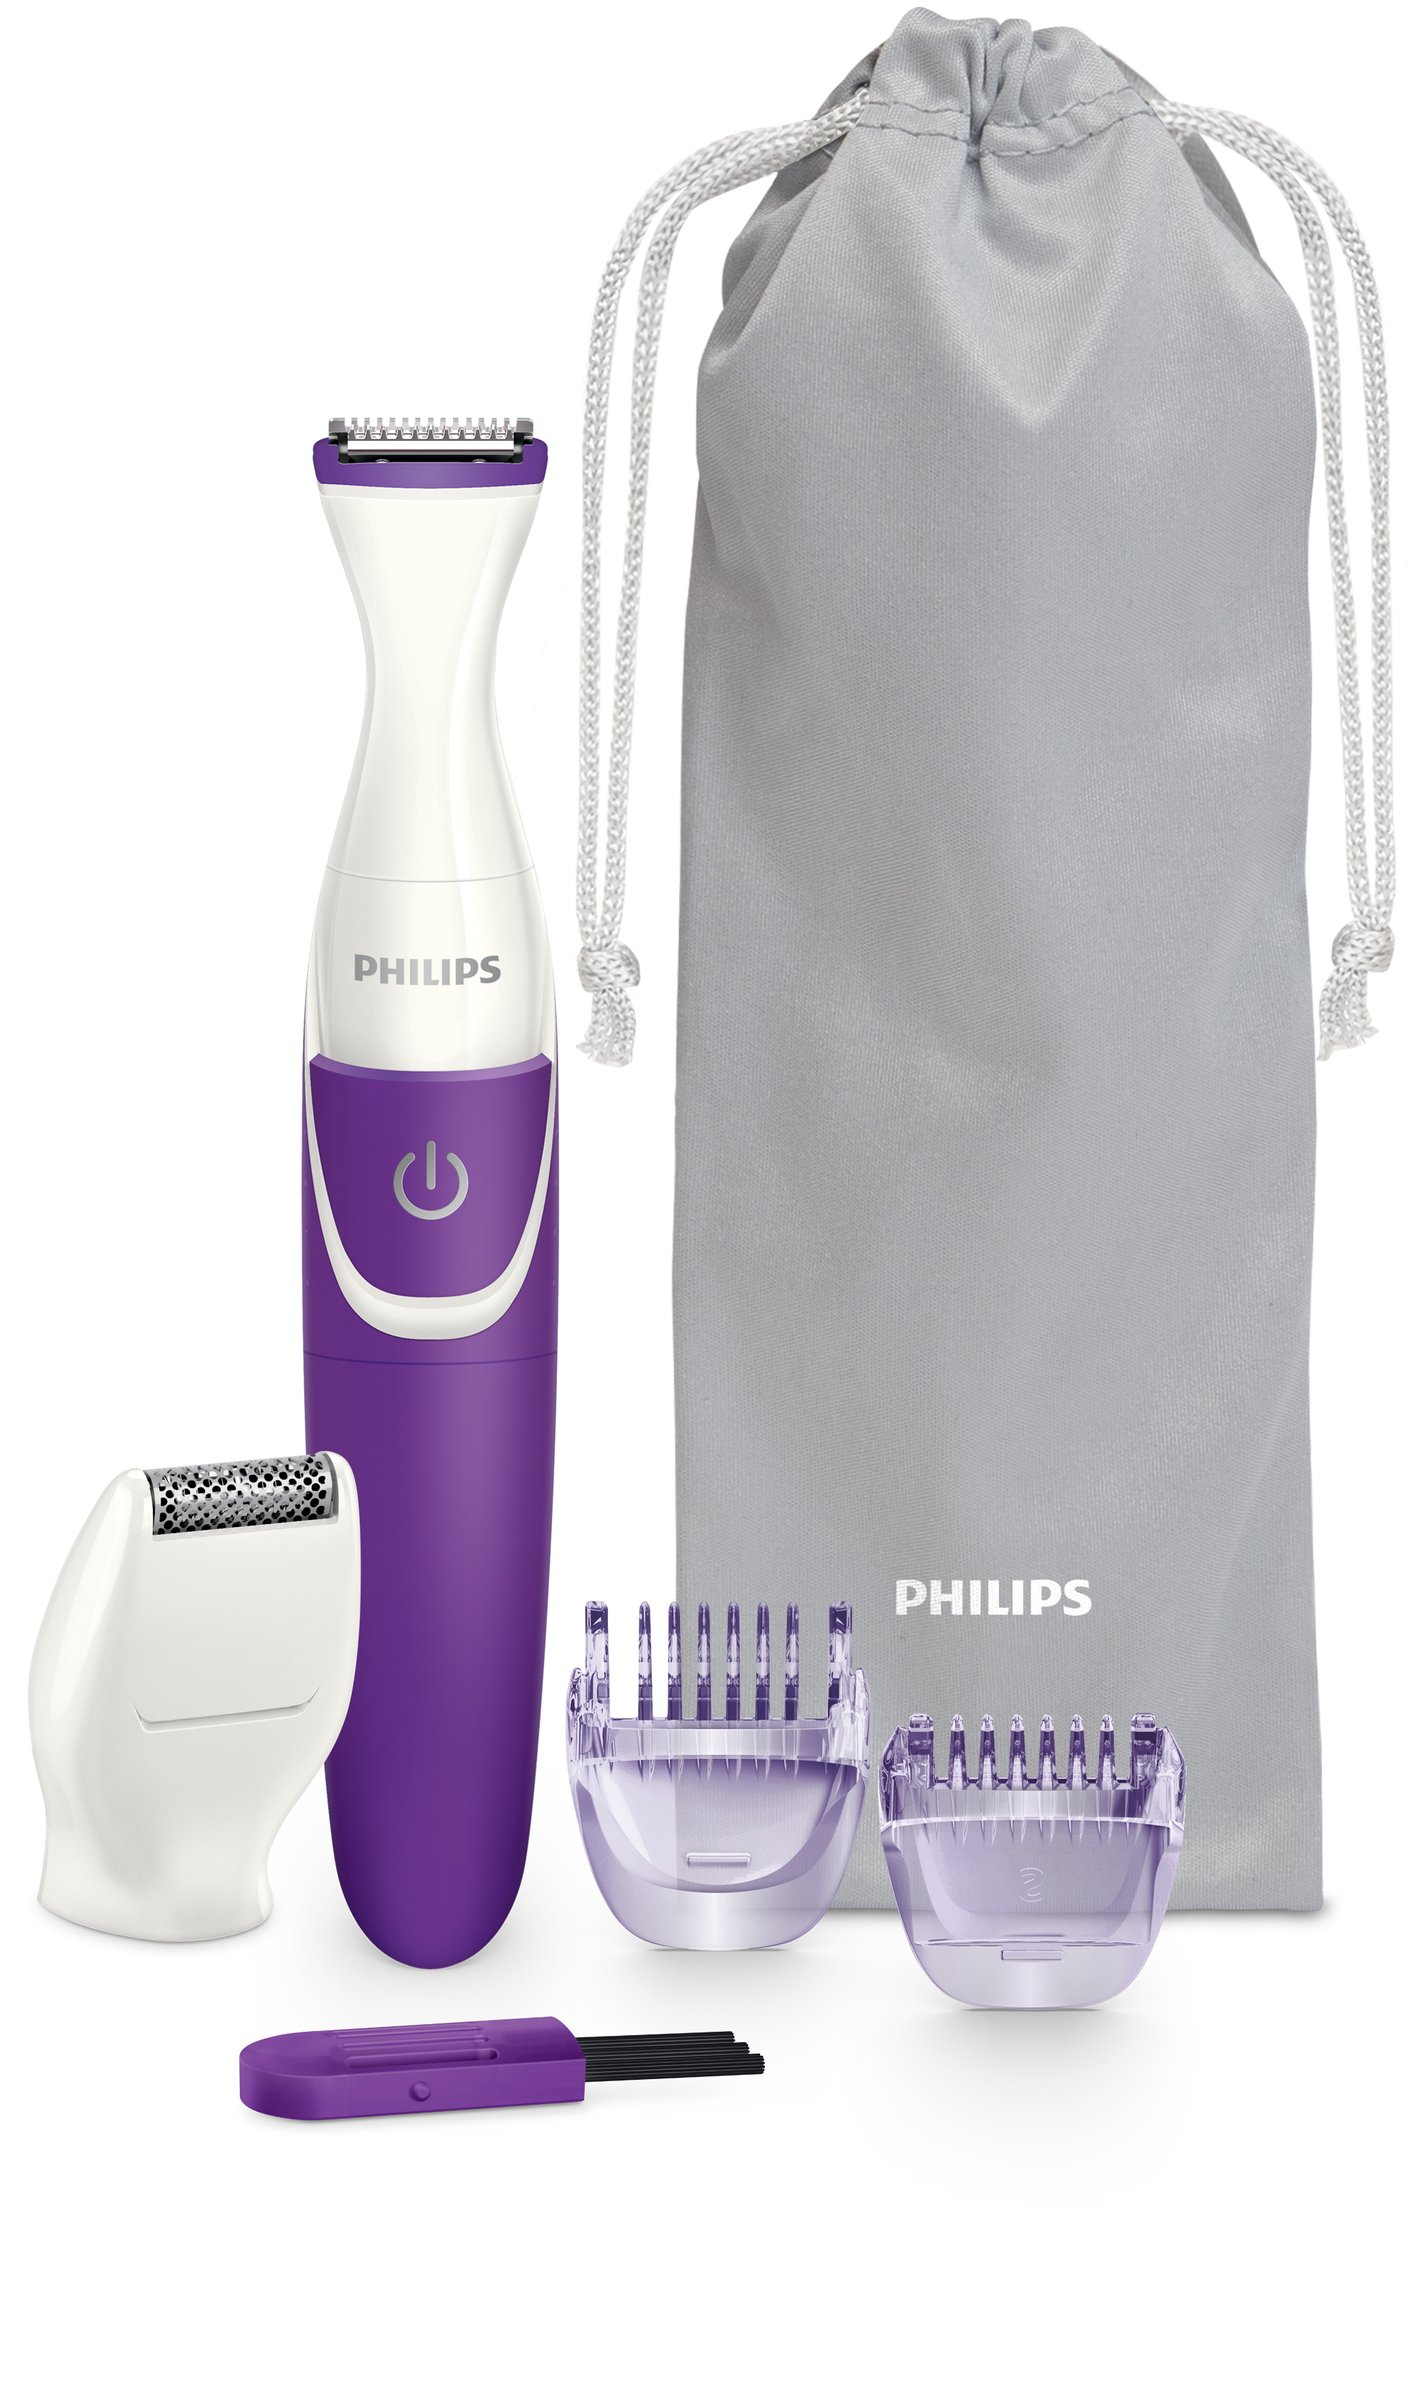 Philips BikiniGenie BRT38315 Handy Bikini Trimmer For Trimming Shaving And Styling The Bikini Zone With Comb Attachments And Shaving Heads For Effortless Hair Removal